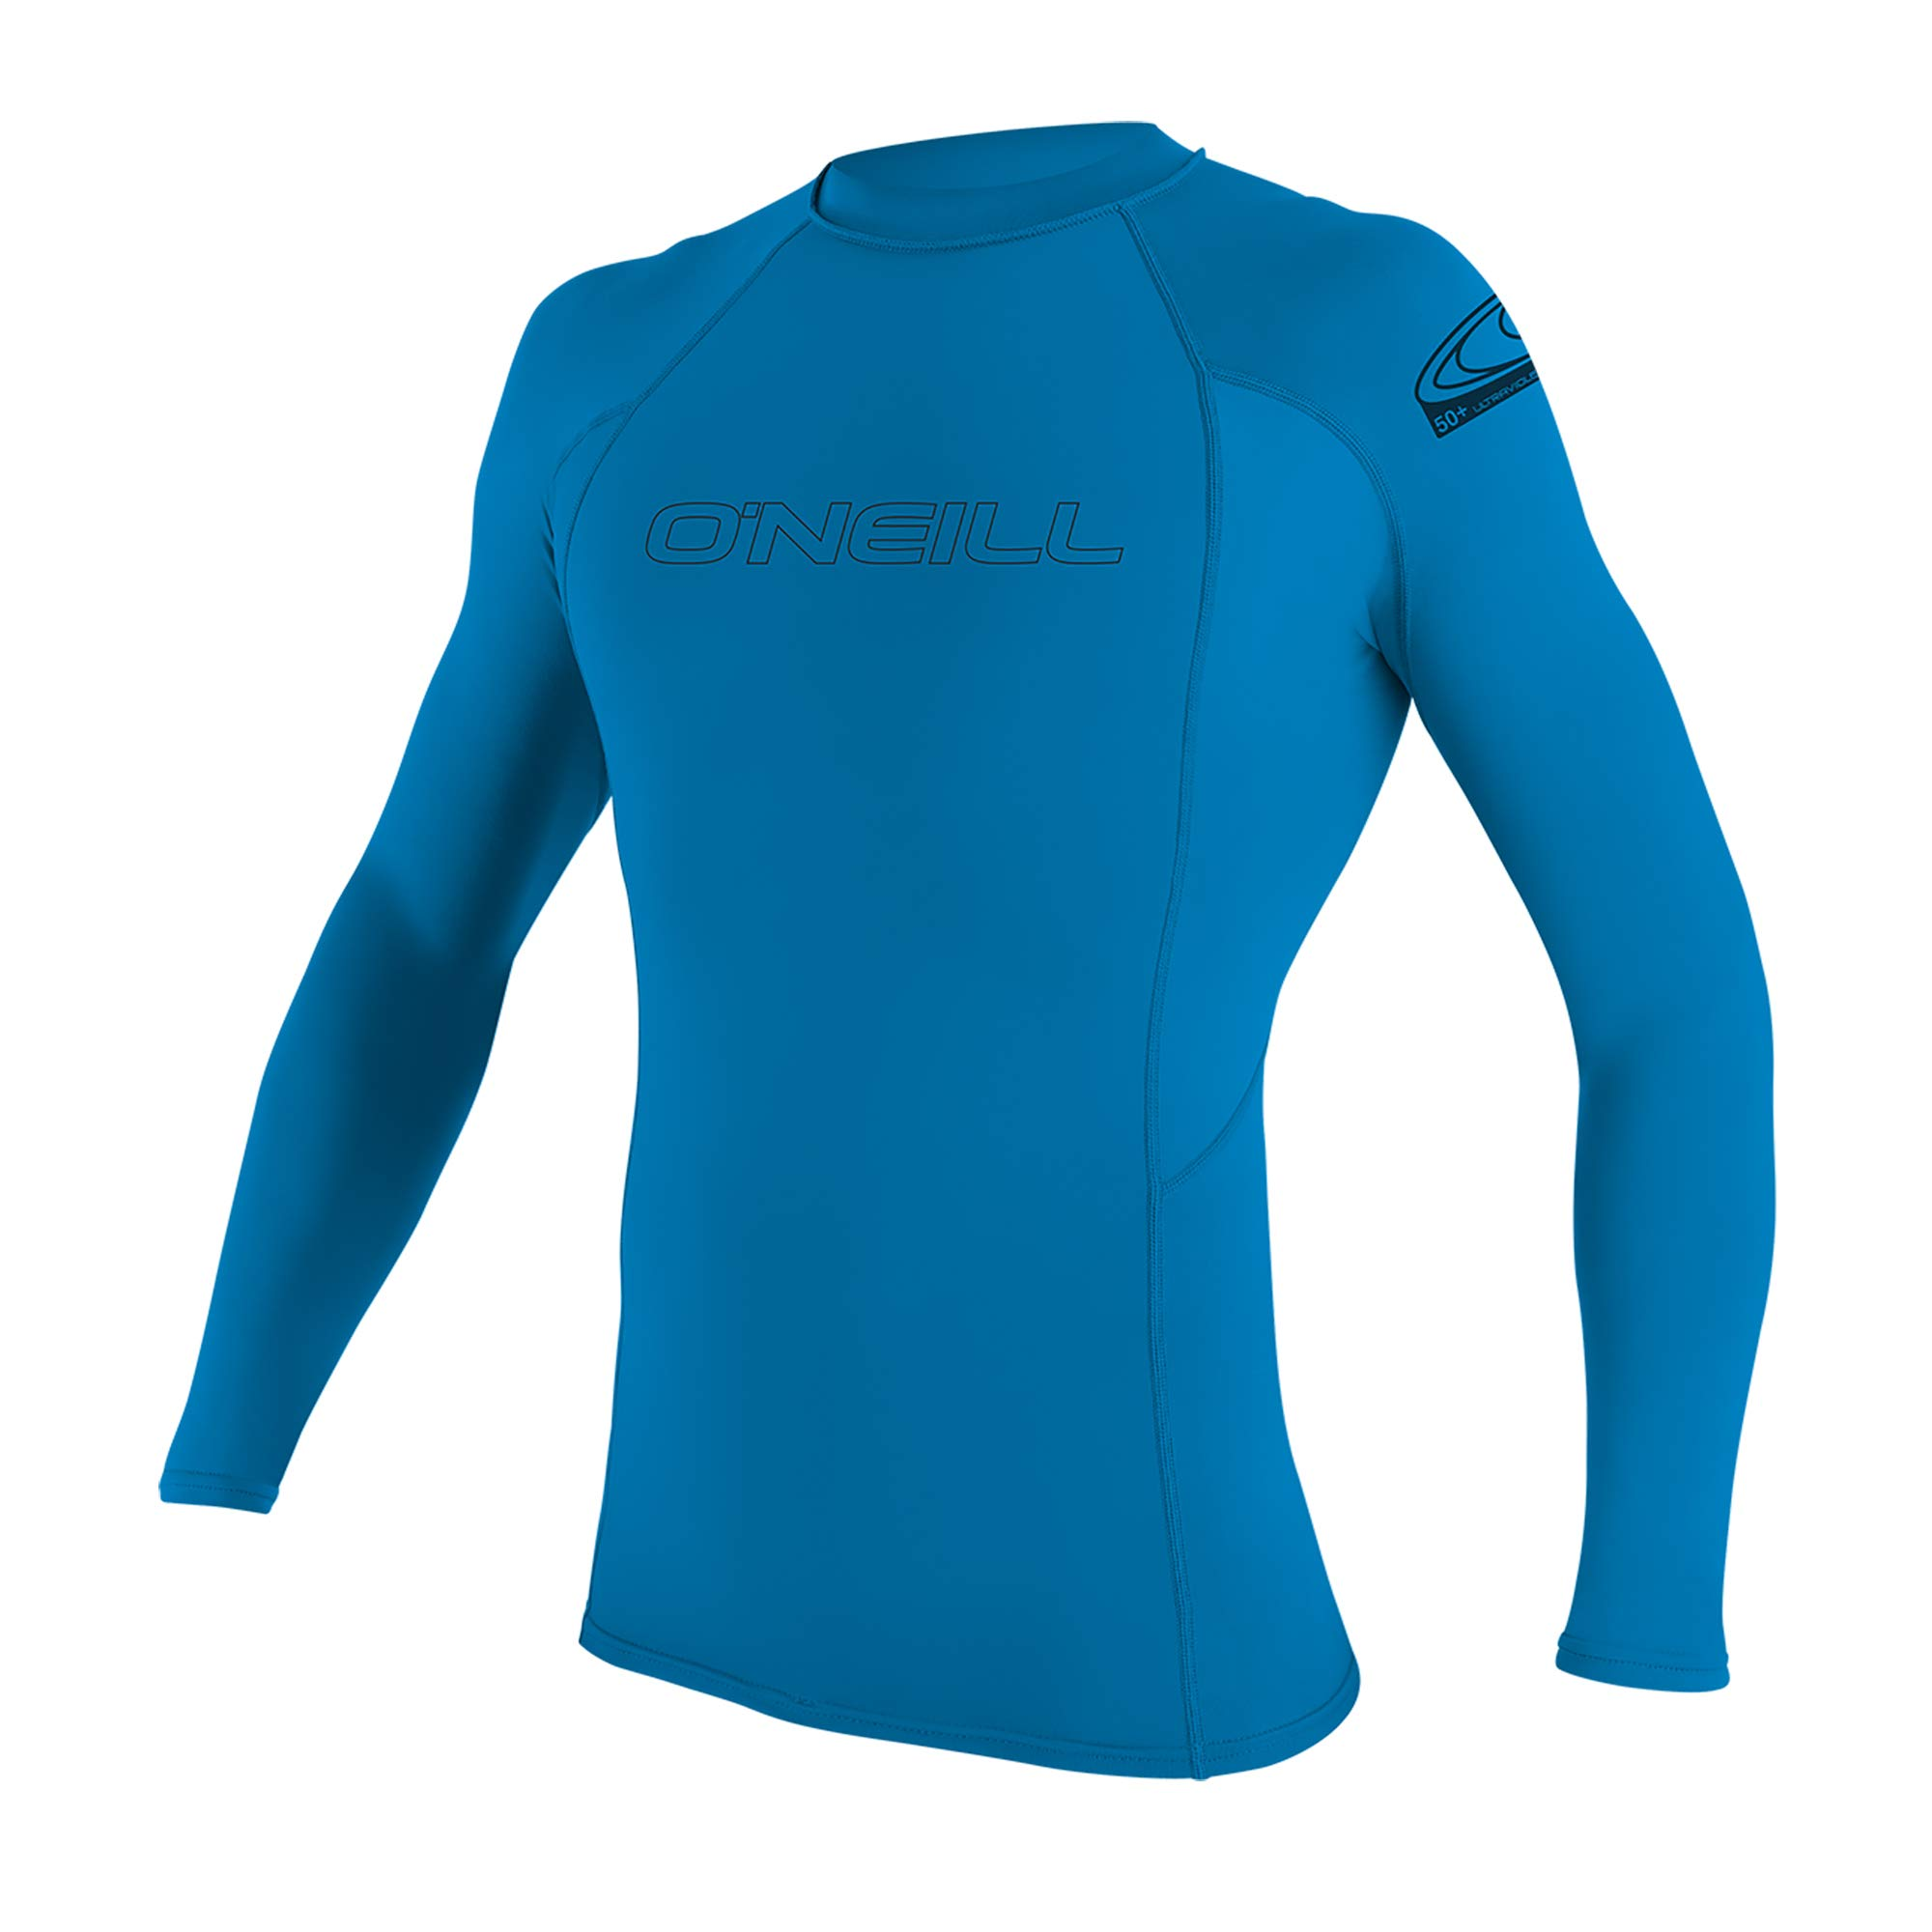 O'Neill Youth Basic Skins UPF 50+ Long Sleeve Rash Guard, Bright Blue, 6 by O'Neill Wetsuits